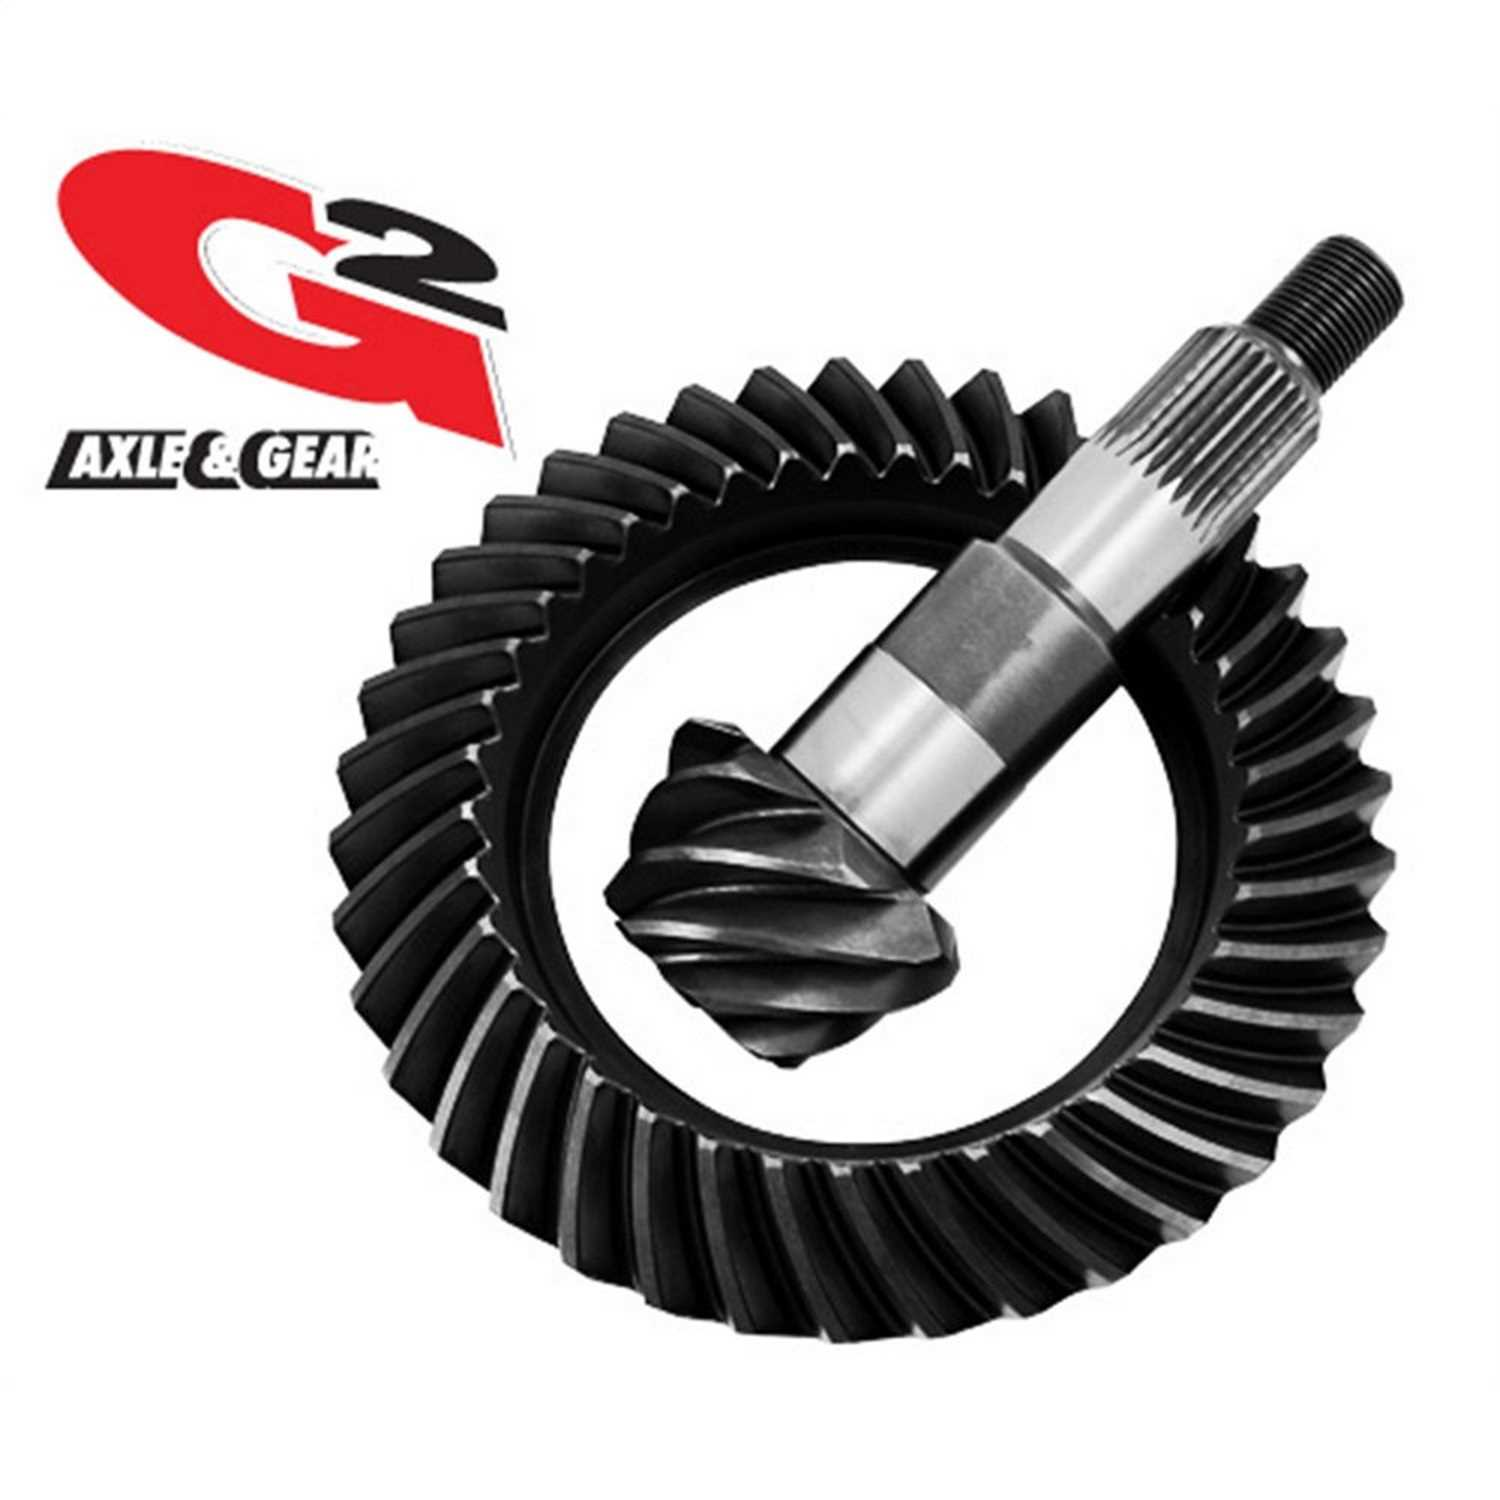 2-2010-488 G2 Axle and Gear Ring and Pinion Set